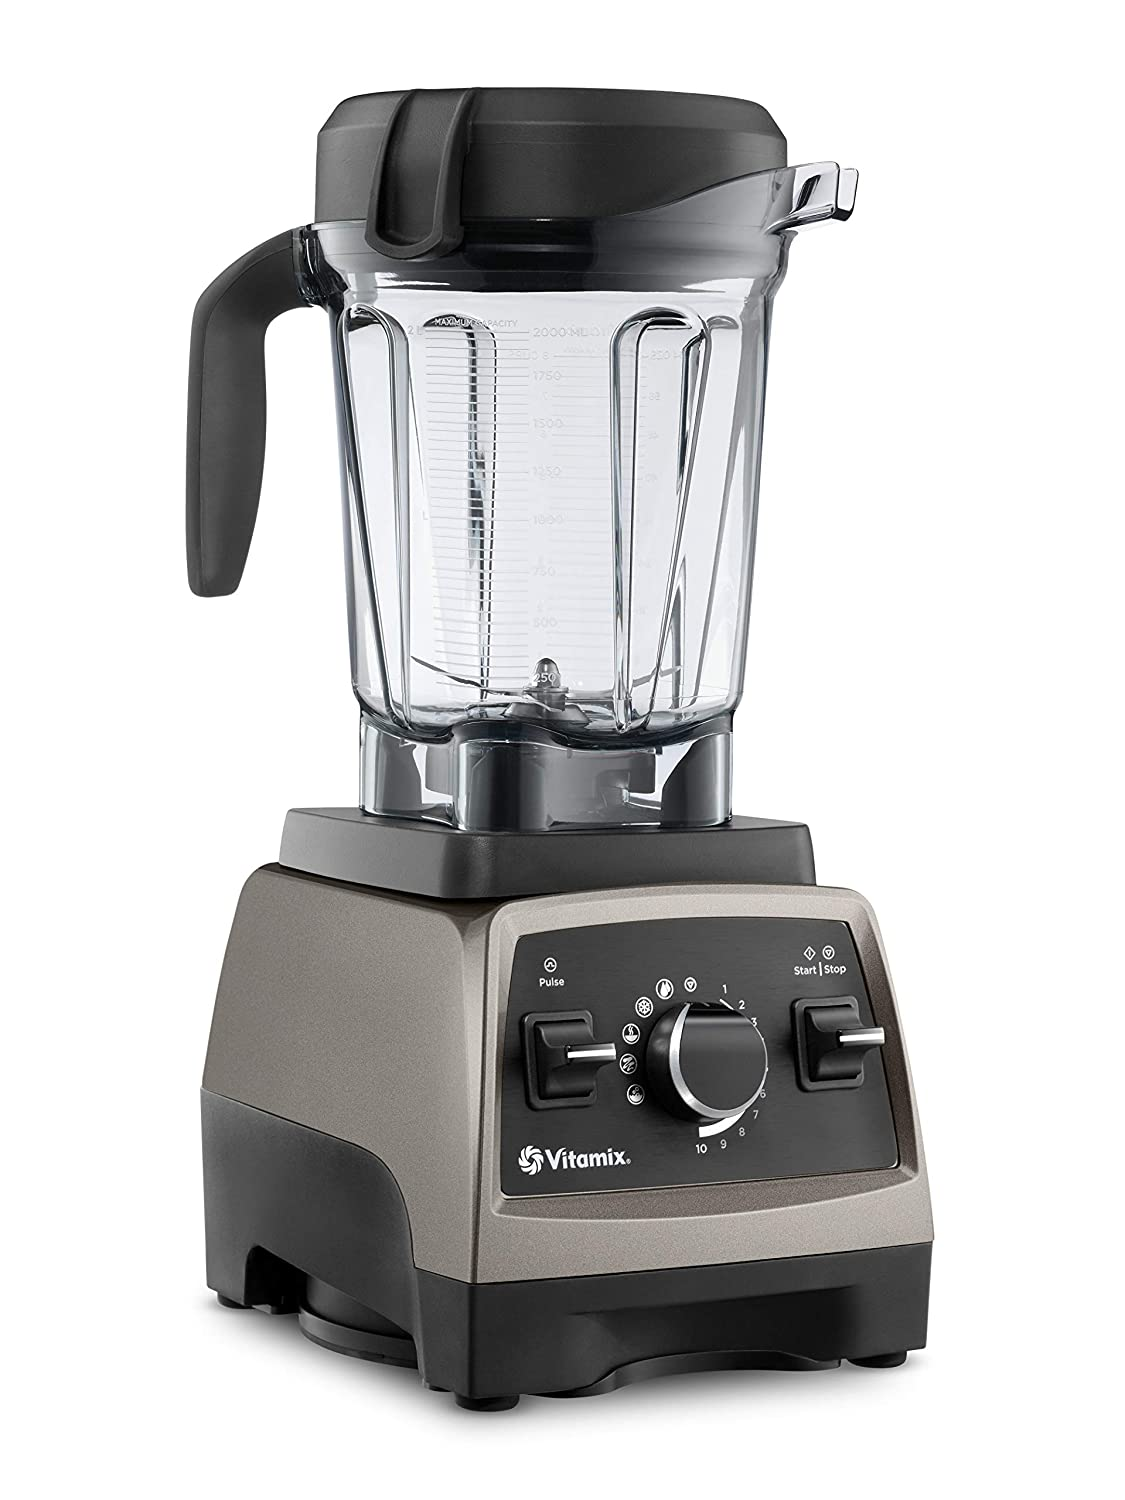 Vitamix Professional Series Licuadora: Amazon.es: Hogar